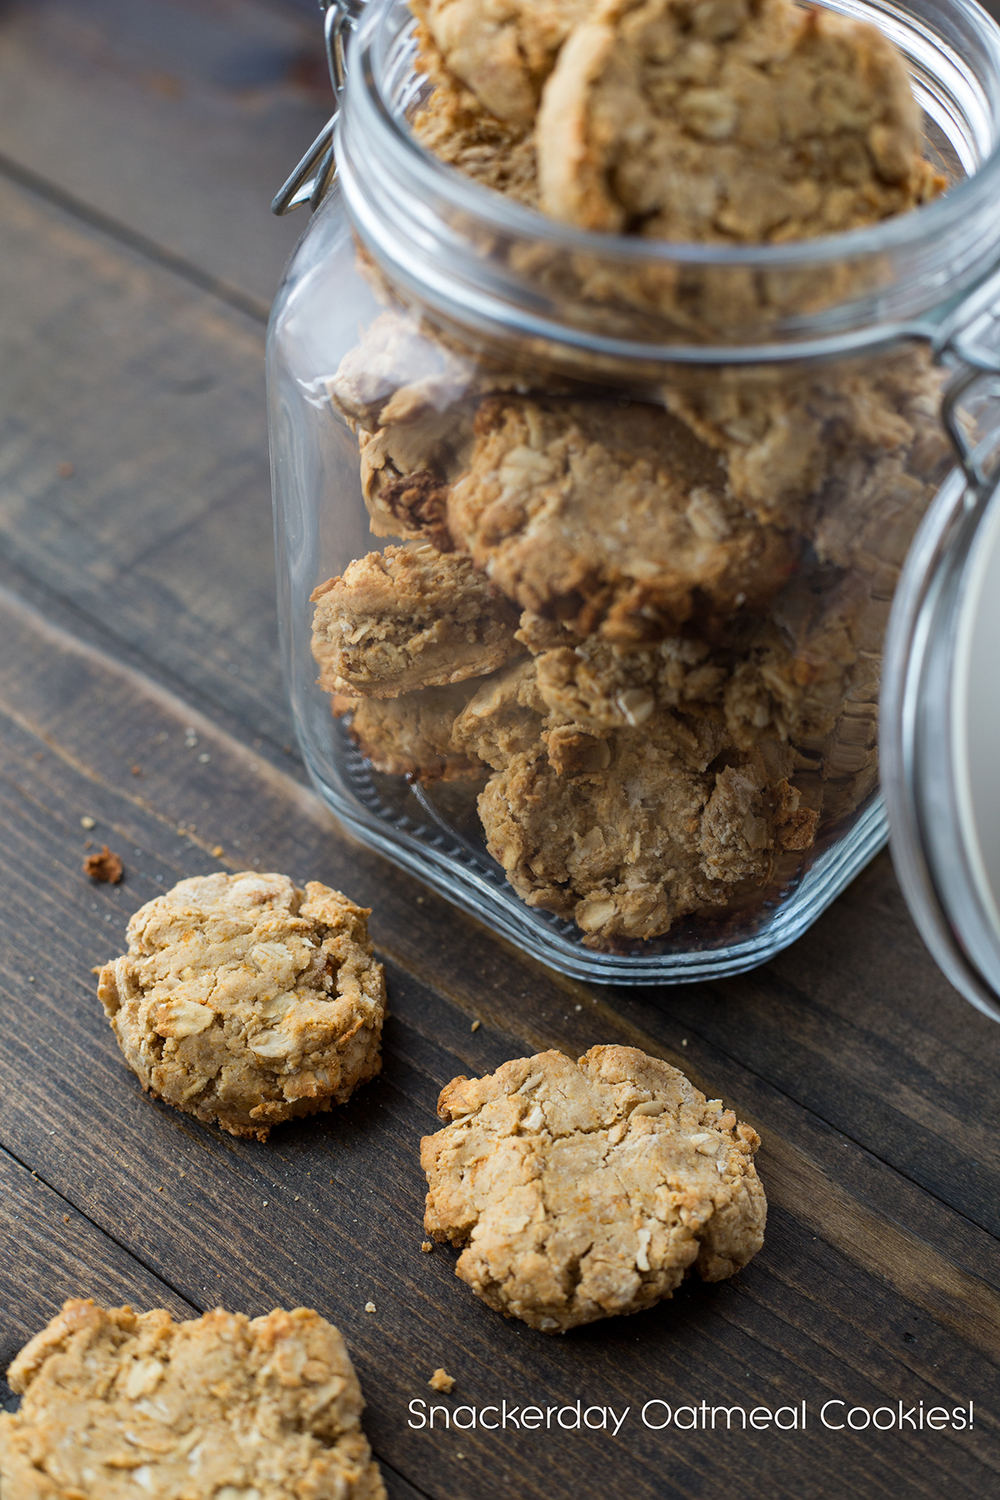 diy dog cookies, oatmeal cookies, dog treats, snackerday, newfandhound